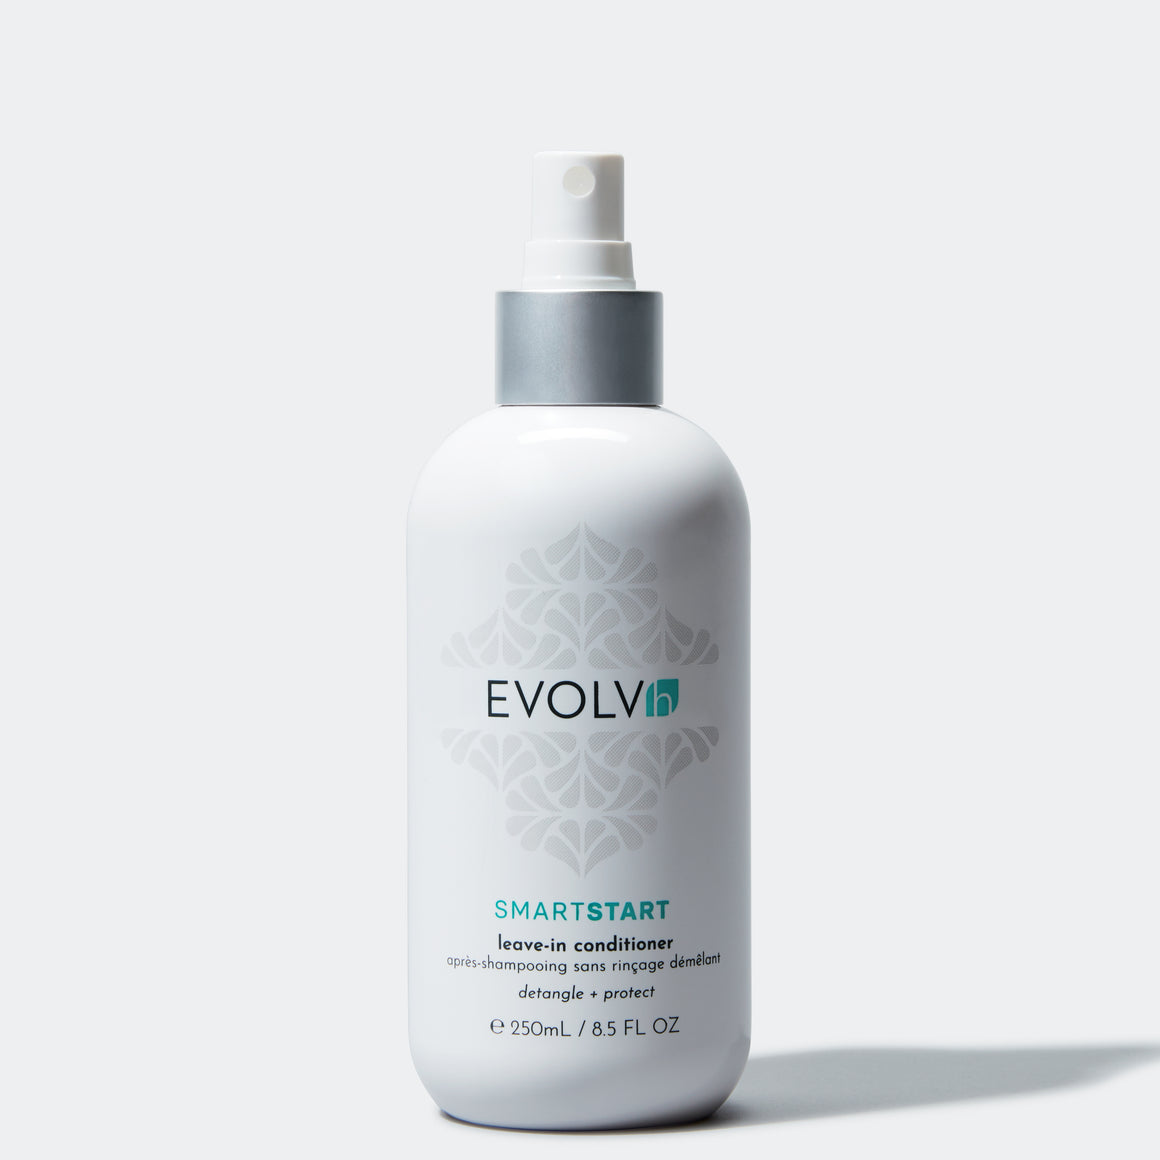 The best clean beauty heat styling protectant  and leave-in conditioner